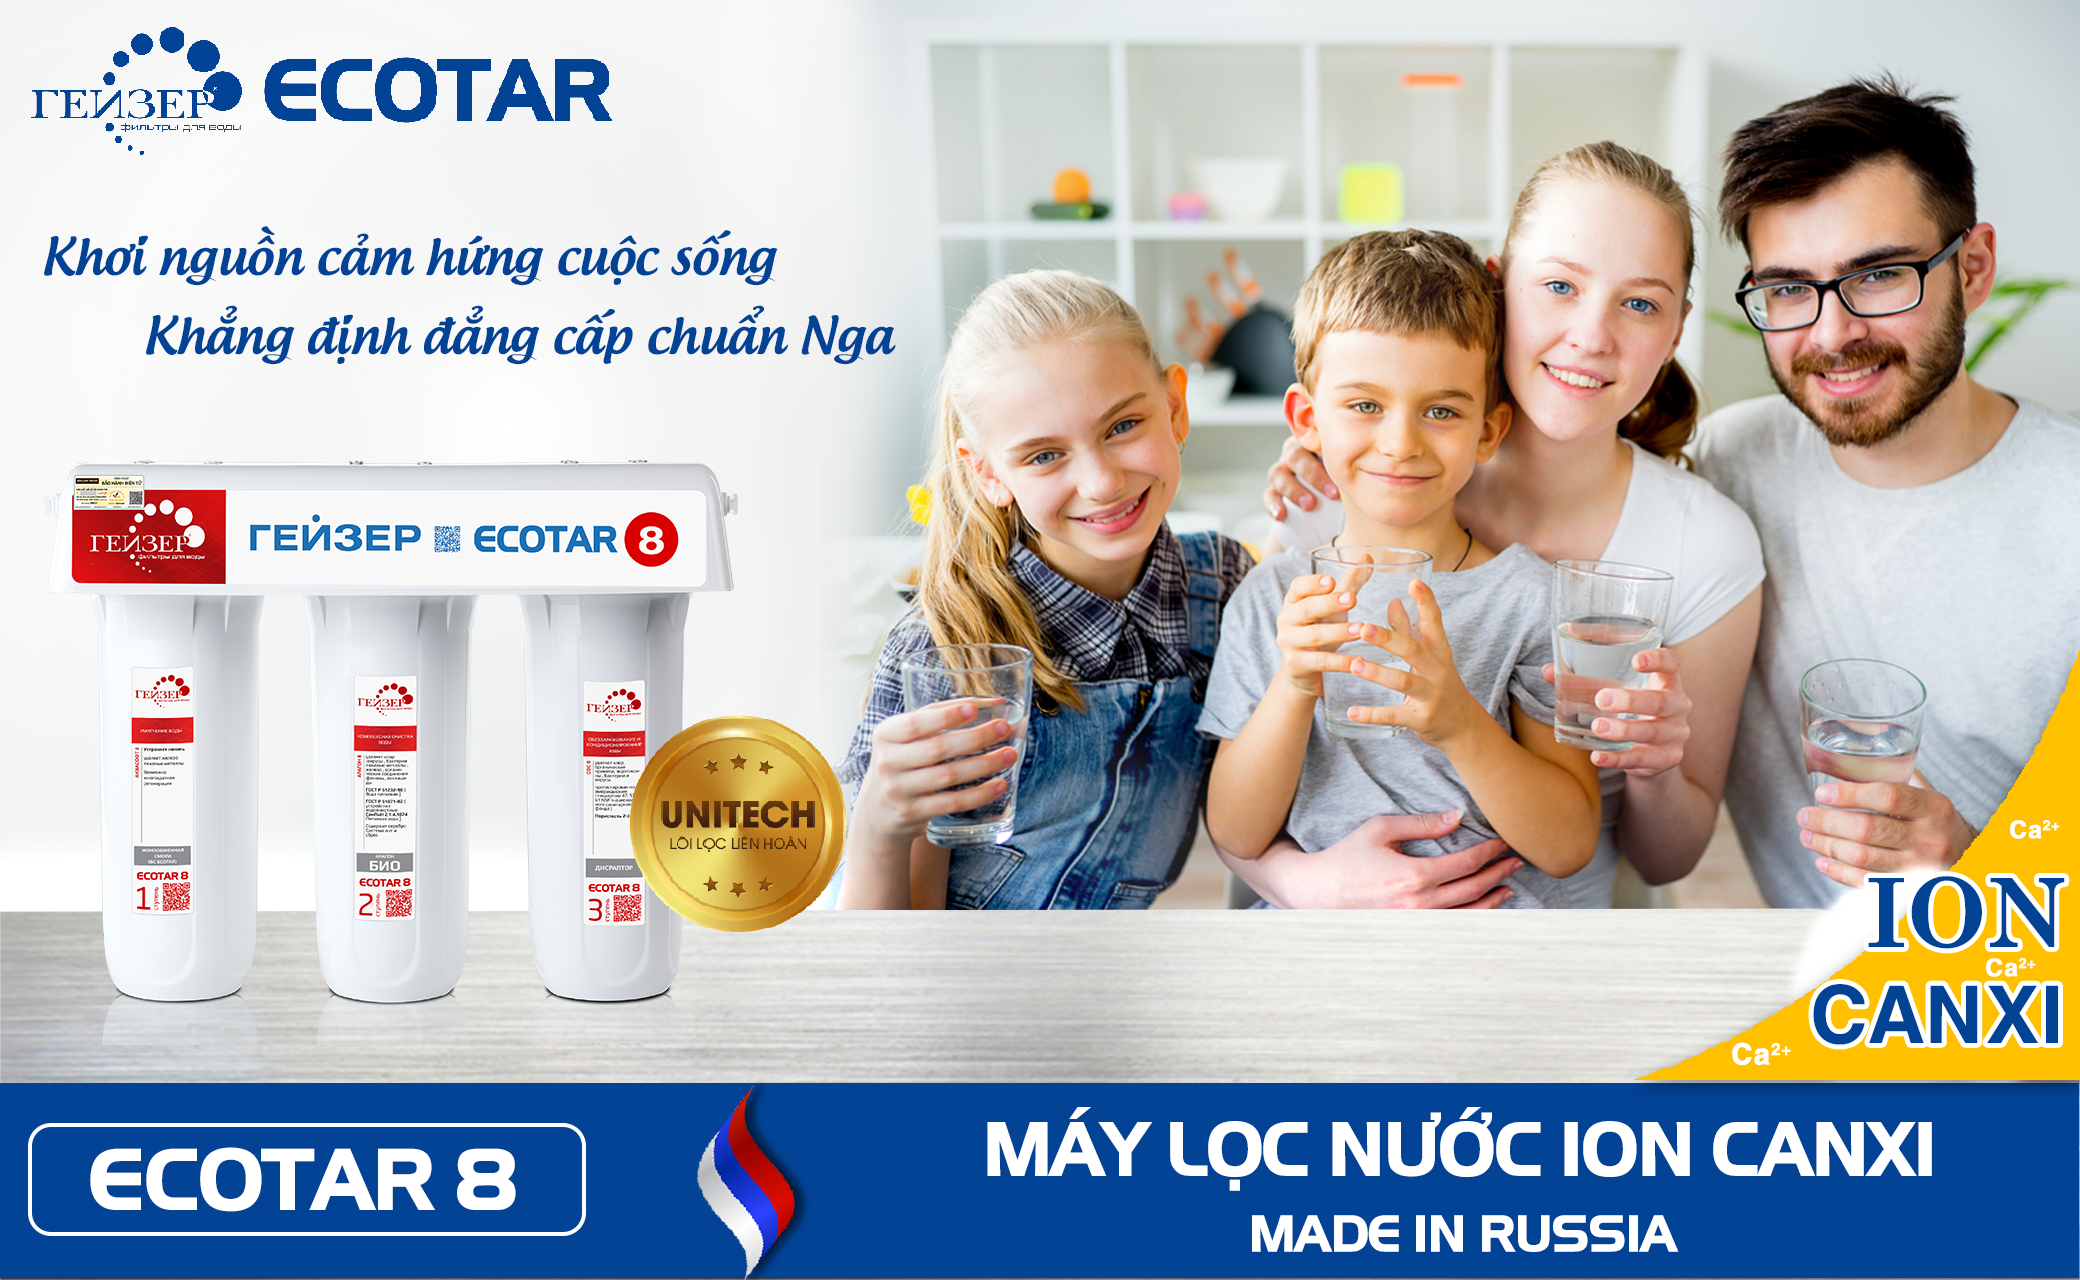 may-loc-nuoc-ion-canxi-geyser-ecotar-8